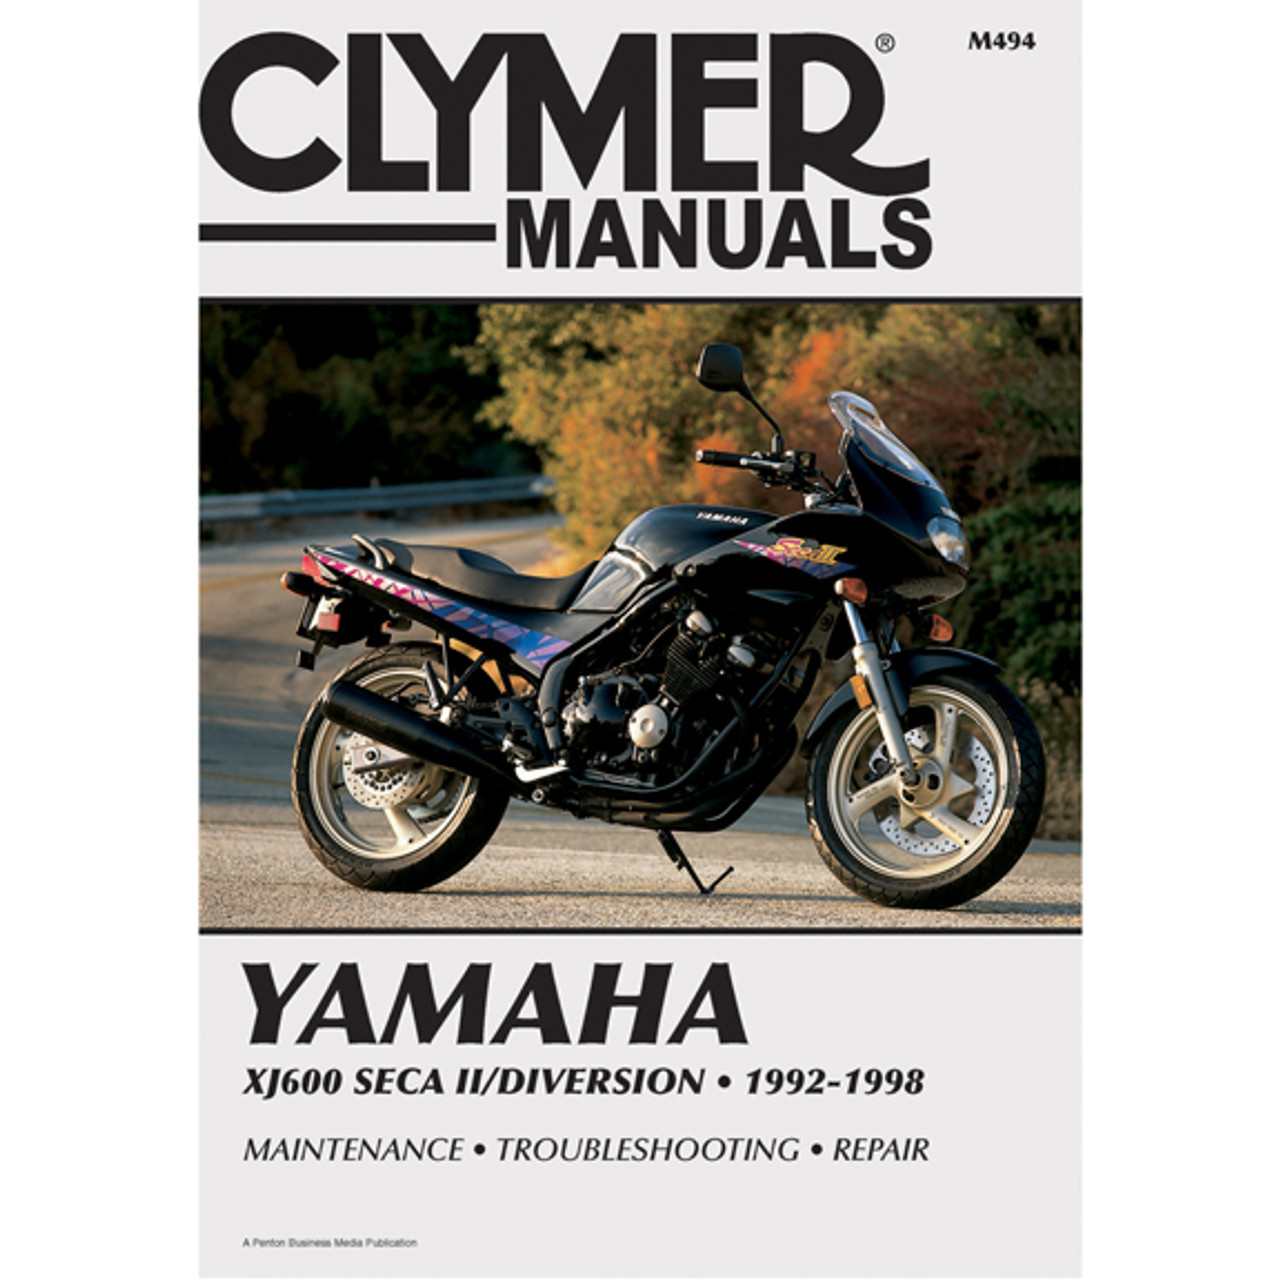 Clymer M494 Service Shop Repair Manual Yamaha XJ600 SECA II 92-98